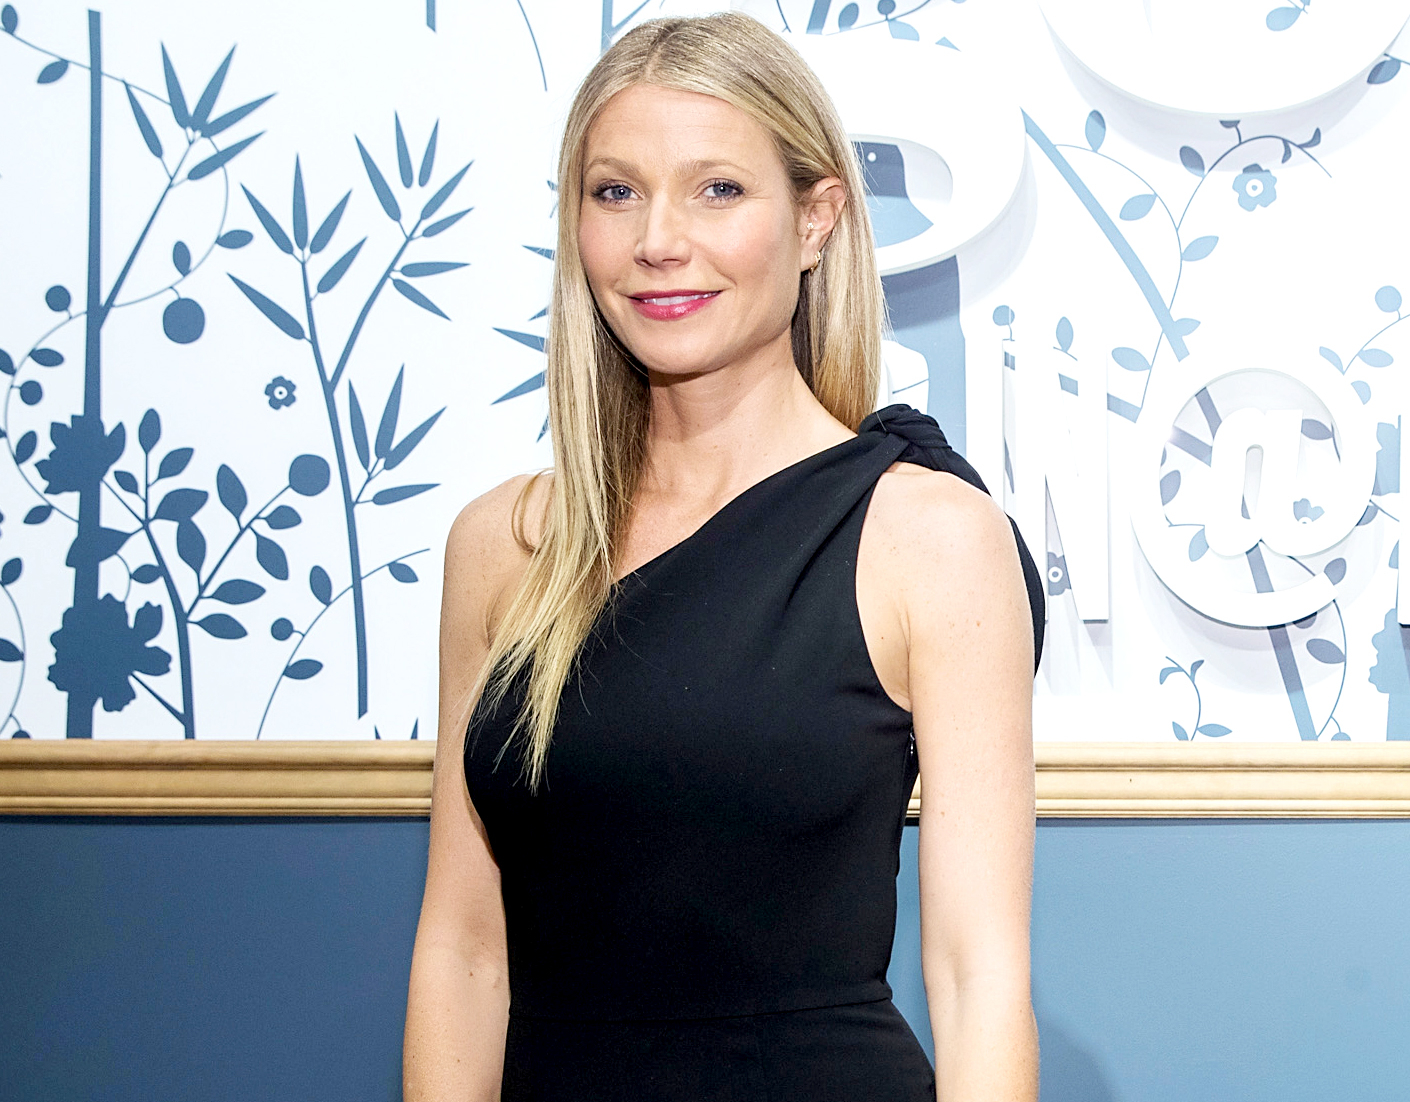 Gwyneth Paltrow visits goop-In@Nordstrom for Book Signing on May 19, 2017 in Seattle, Washington.